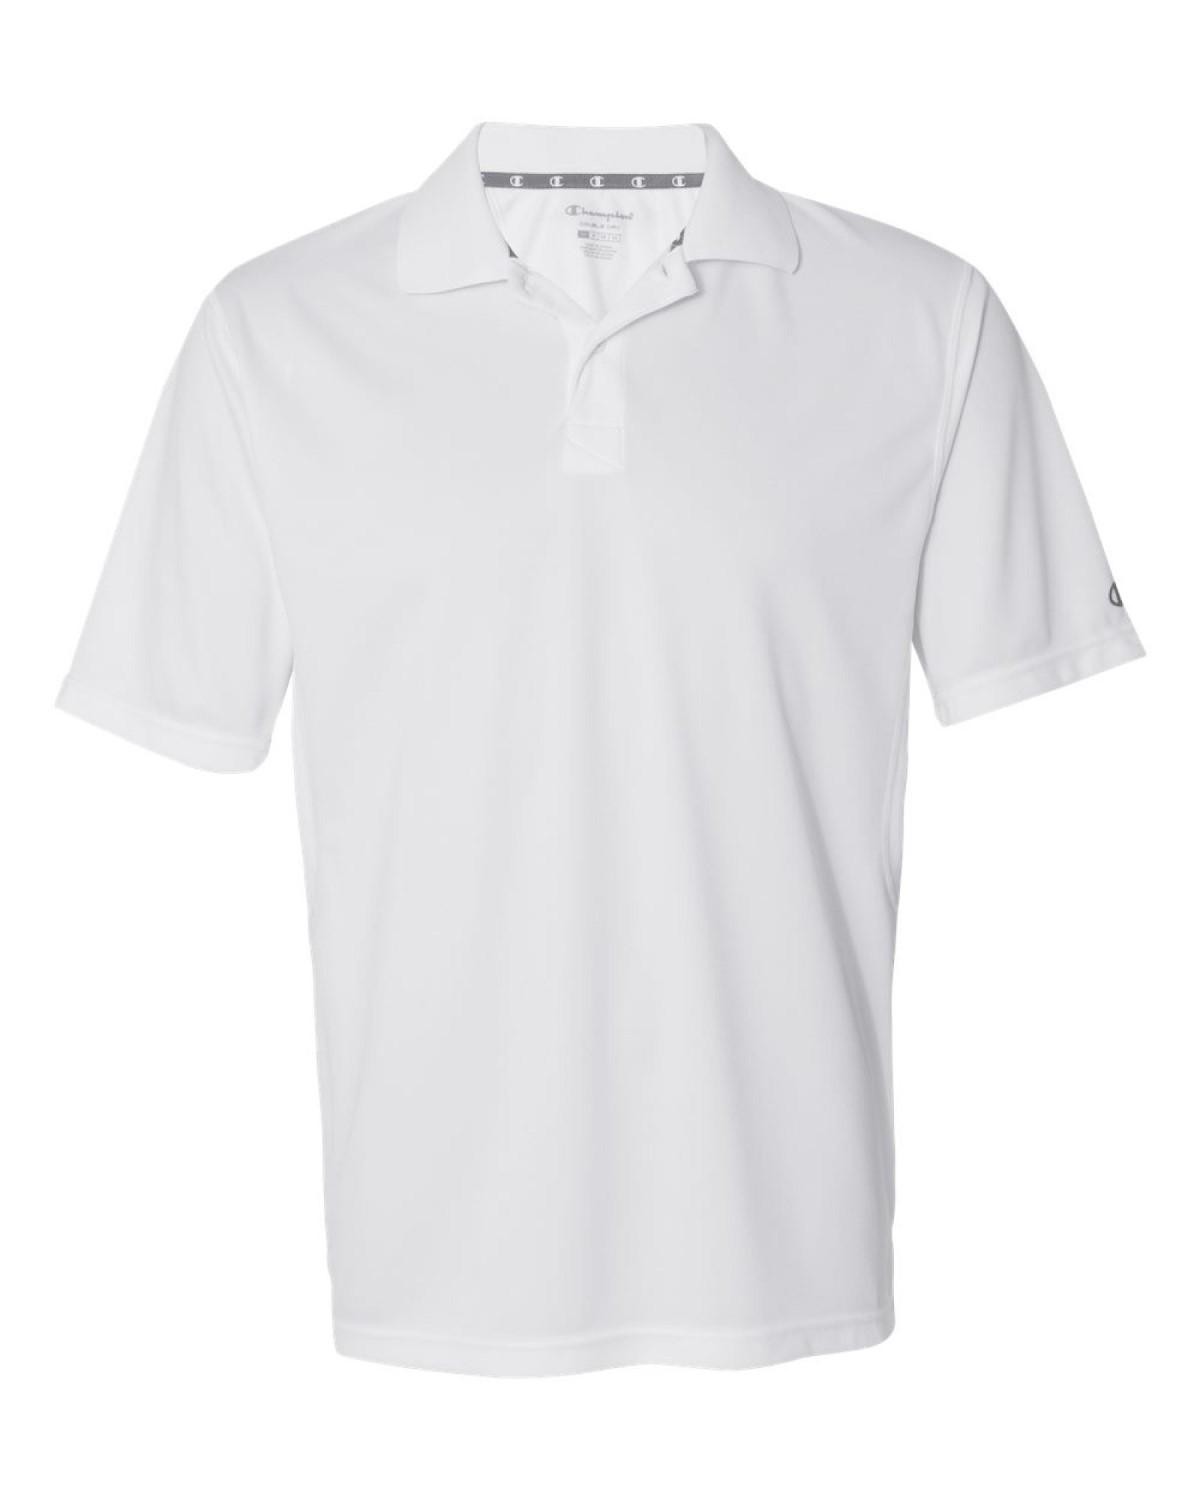 621dc14b Champion. Men's White Ultimate Double Dry Short Sleeve Performance Polo  Shirt. H131